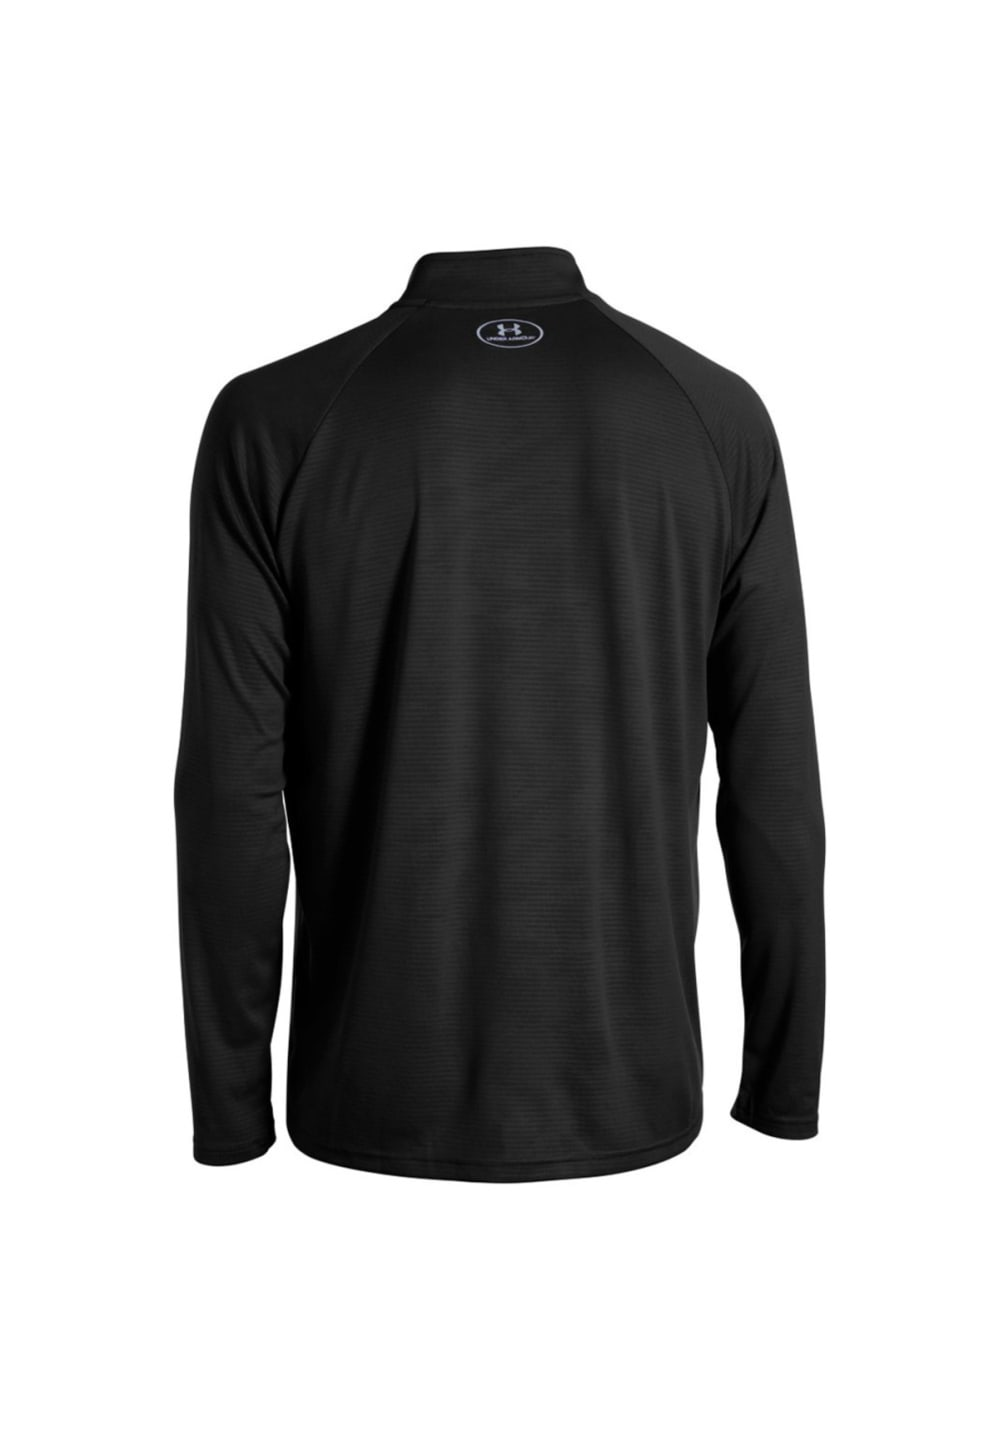 01db9322d Next. Under Armour. Tech 1/4 Zip Longsleeve Tee - Running tops for Men.  €39.95